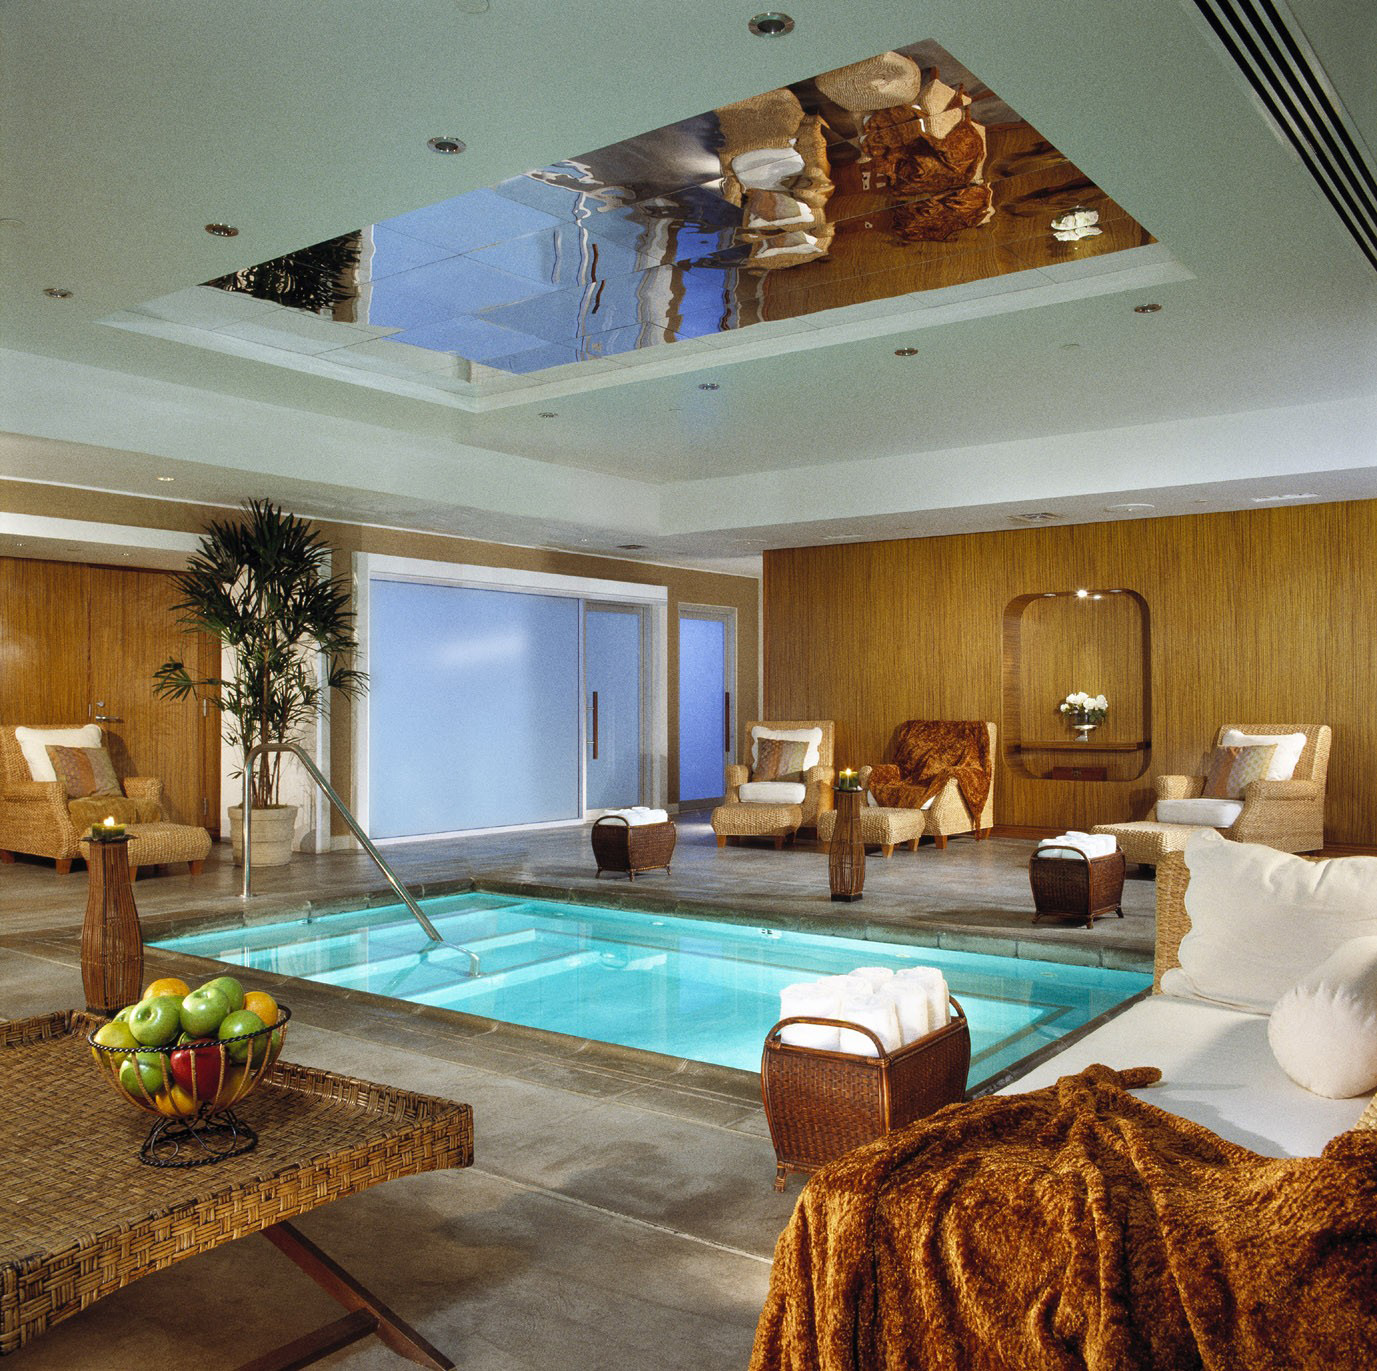 Locals favorite station casinos provides vegas experience for A little bit off the top salon